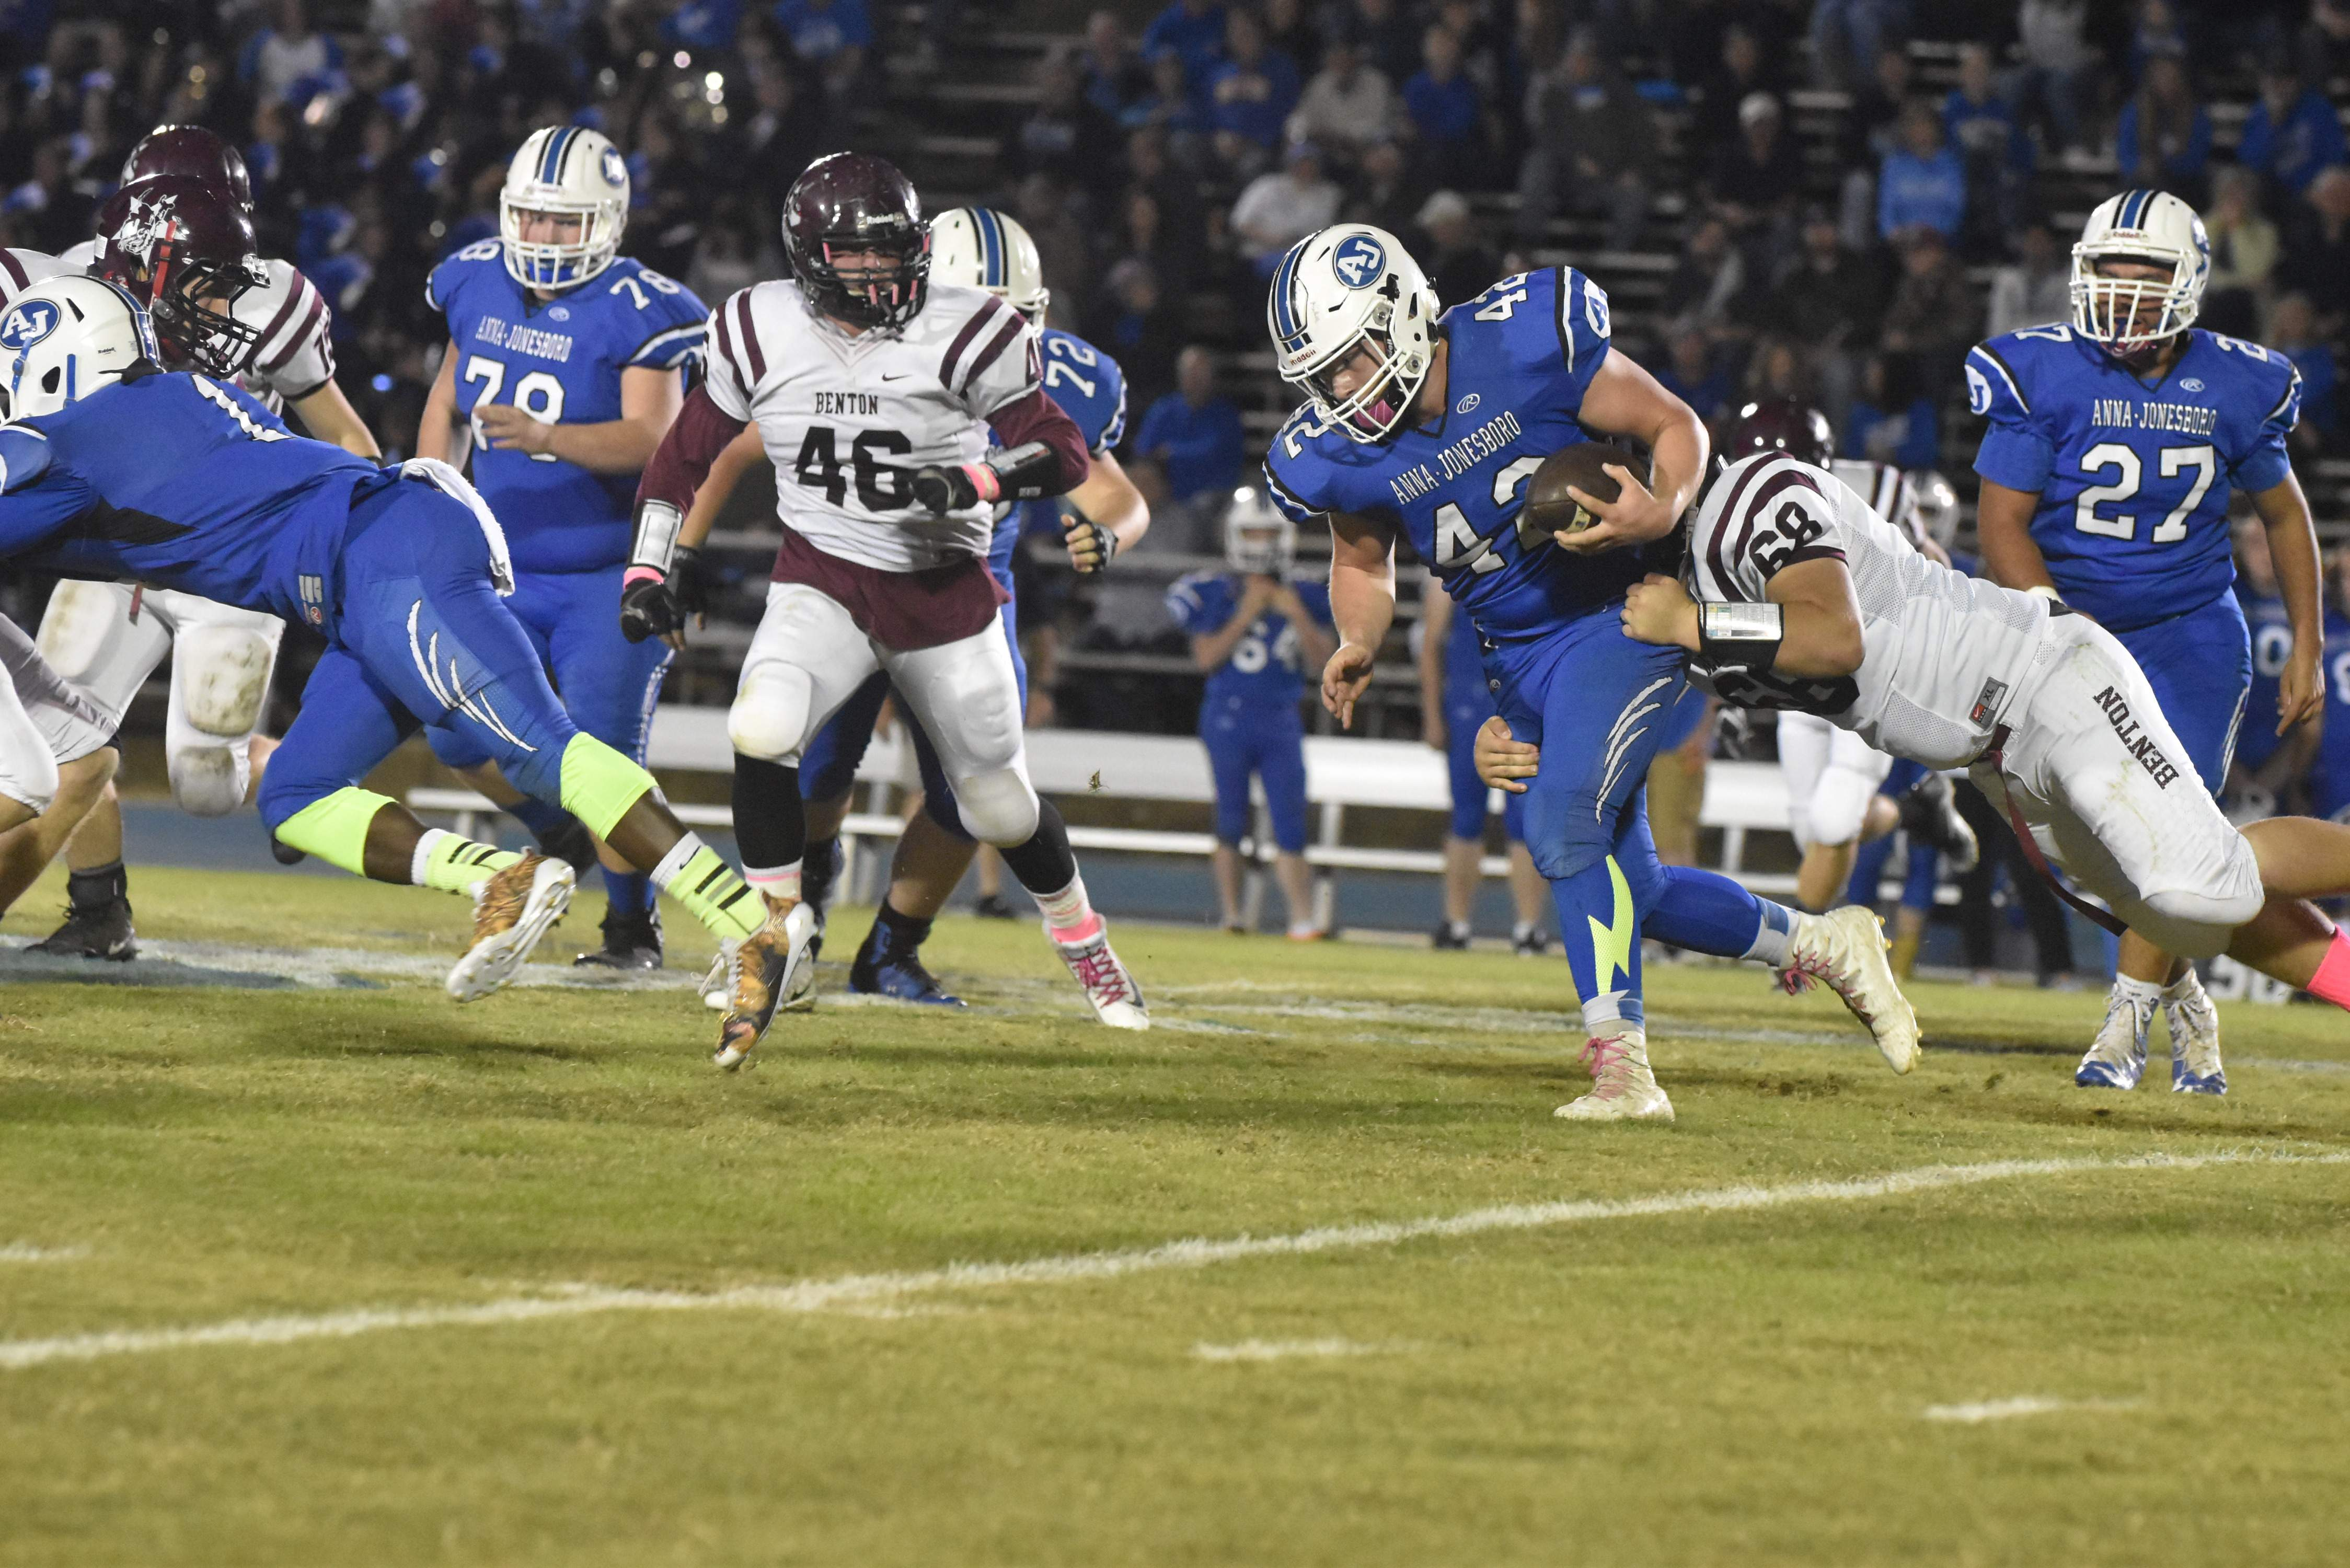 Benton's Warren Smothers chases Anna-Jonesboro running back Jayce Turner during first half action in Anna on Friday night. The Wildcats finished a perfect 9-0 season with a 66-28 victory over the Rangers.